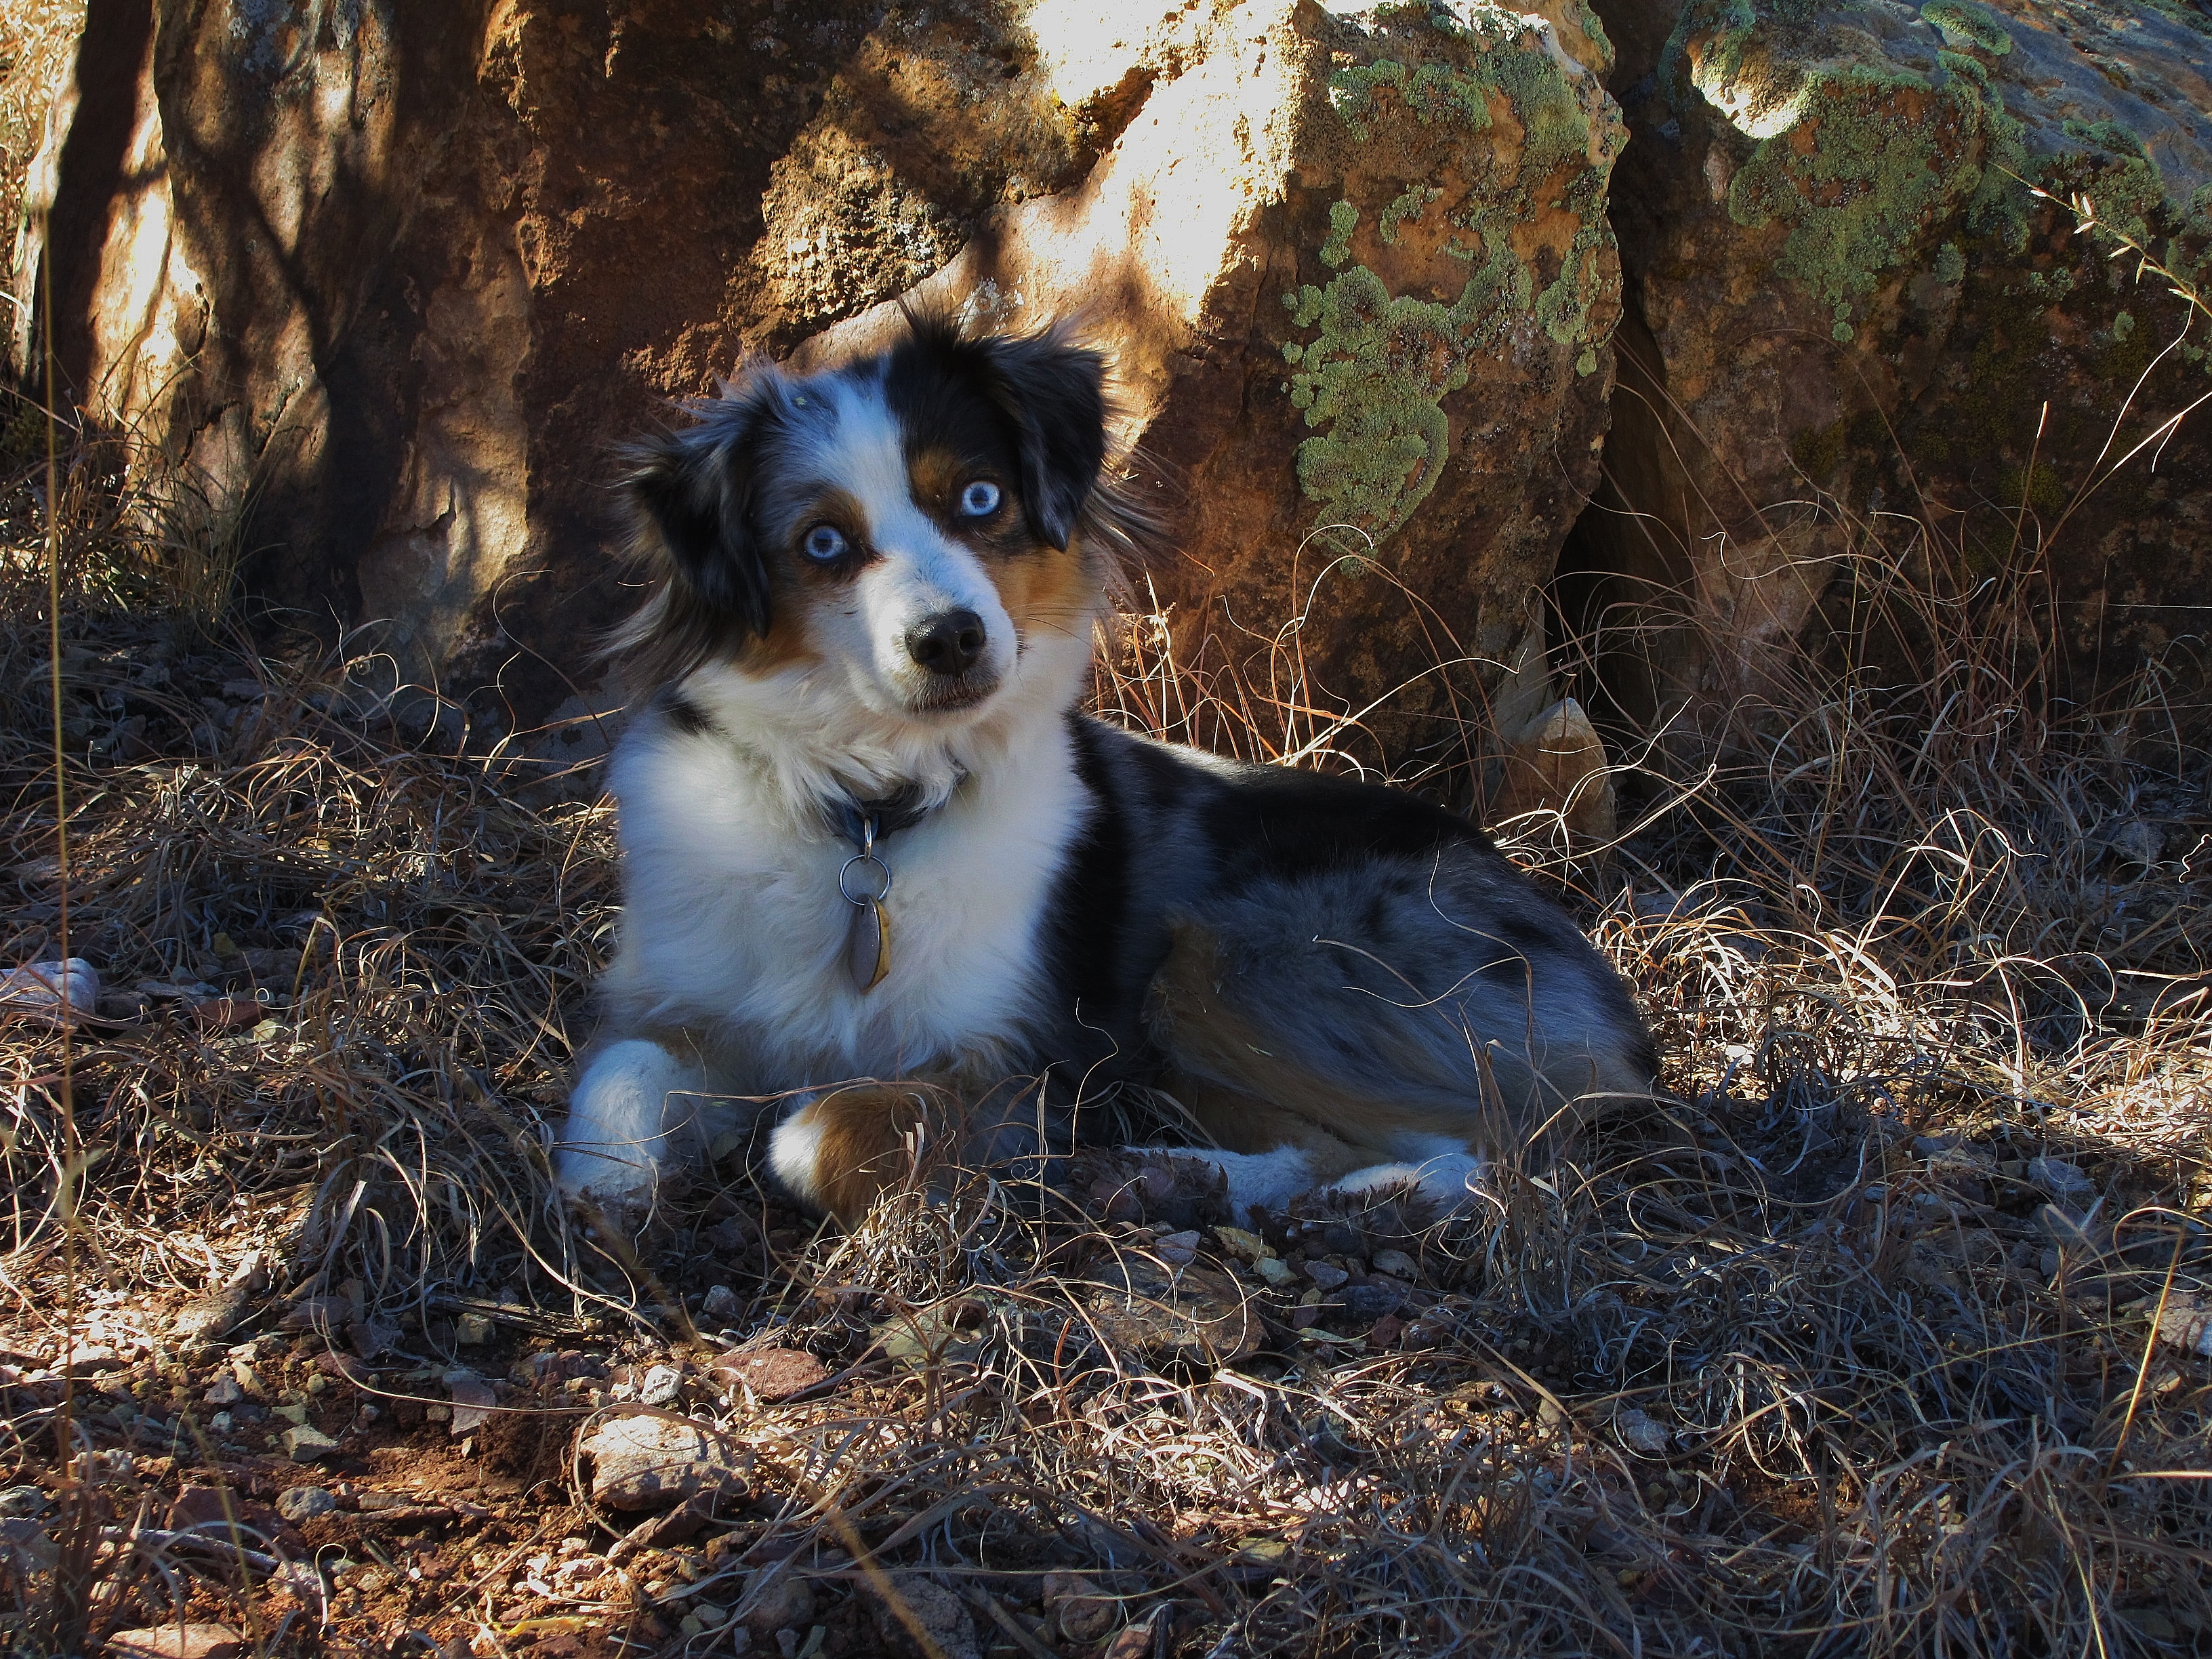 Indy from Toy Aussies in Colorado